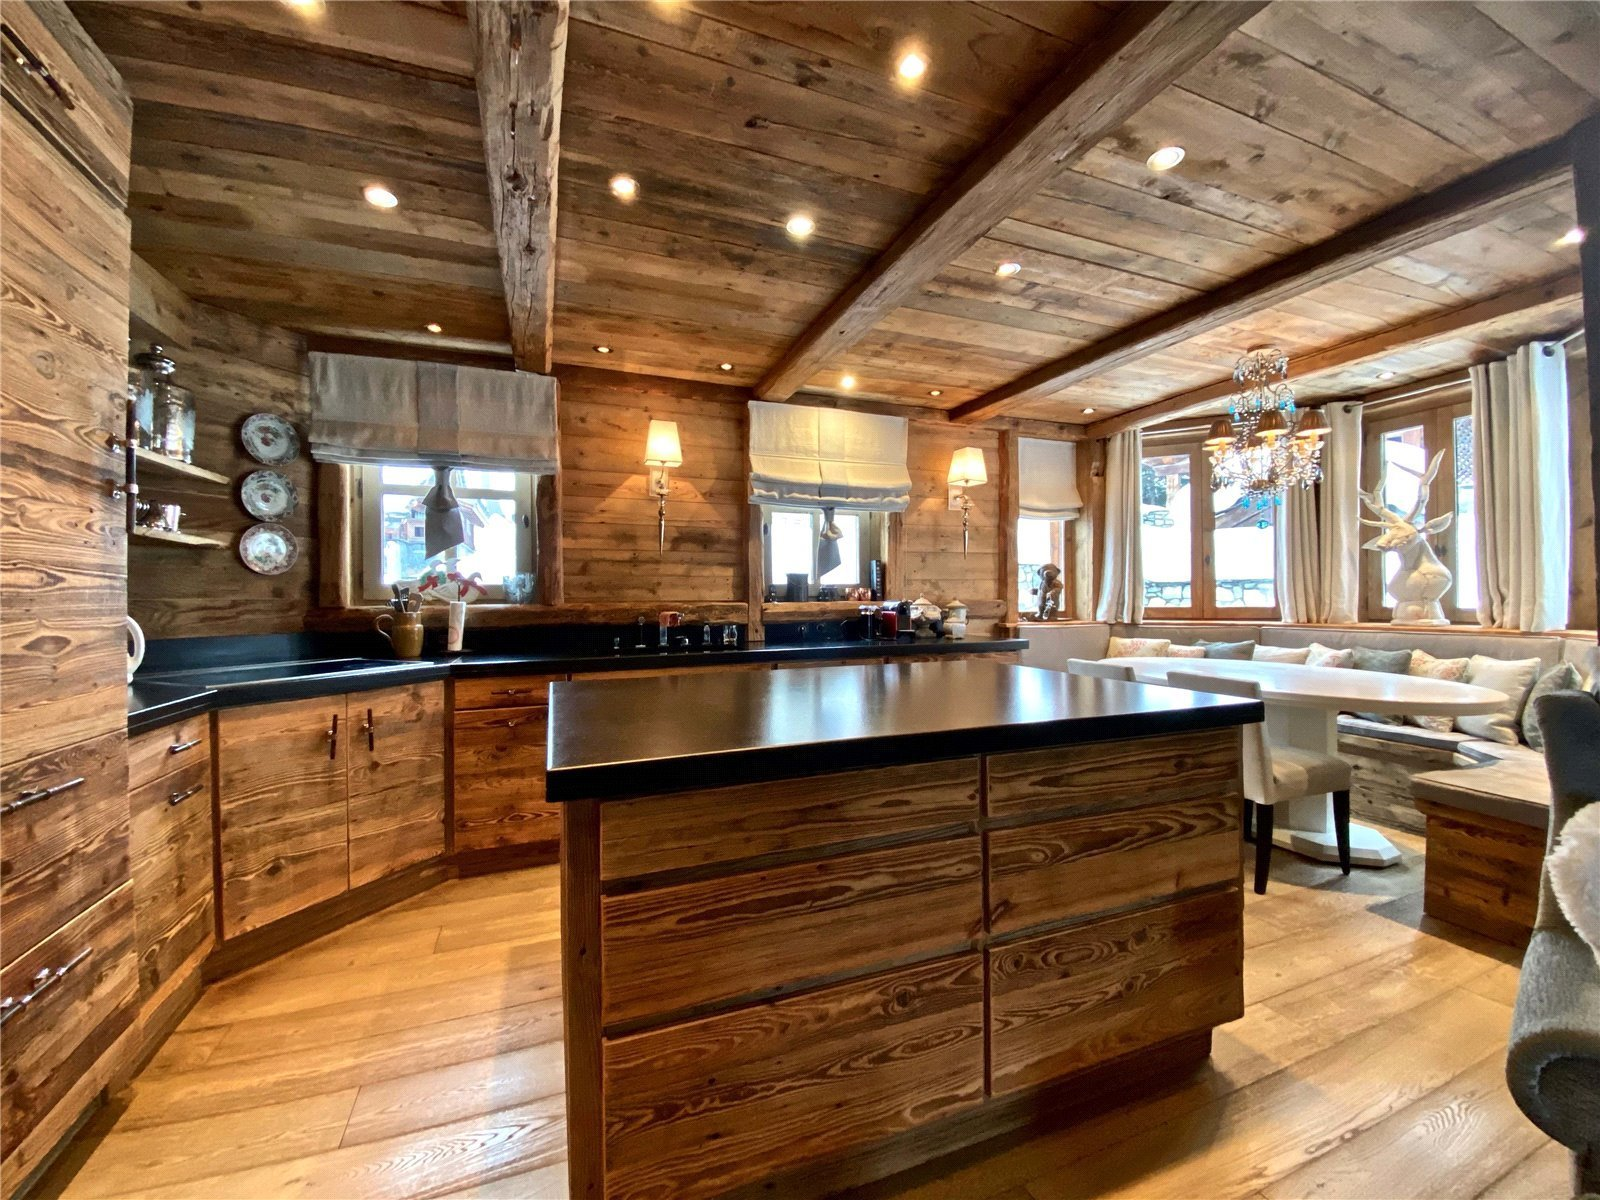 Buying Villa Courchevel Elegant and traditional 5 bedroom chalet of approximately 300 sq m, ideally situated for the ski slopes of Courchevel 1850.